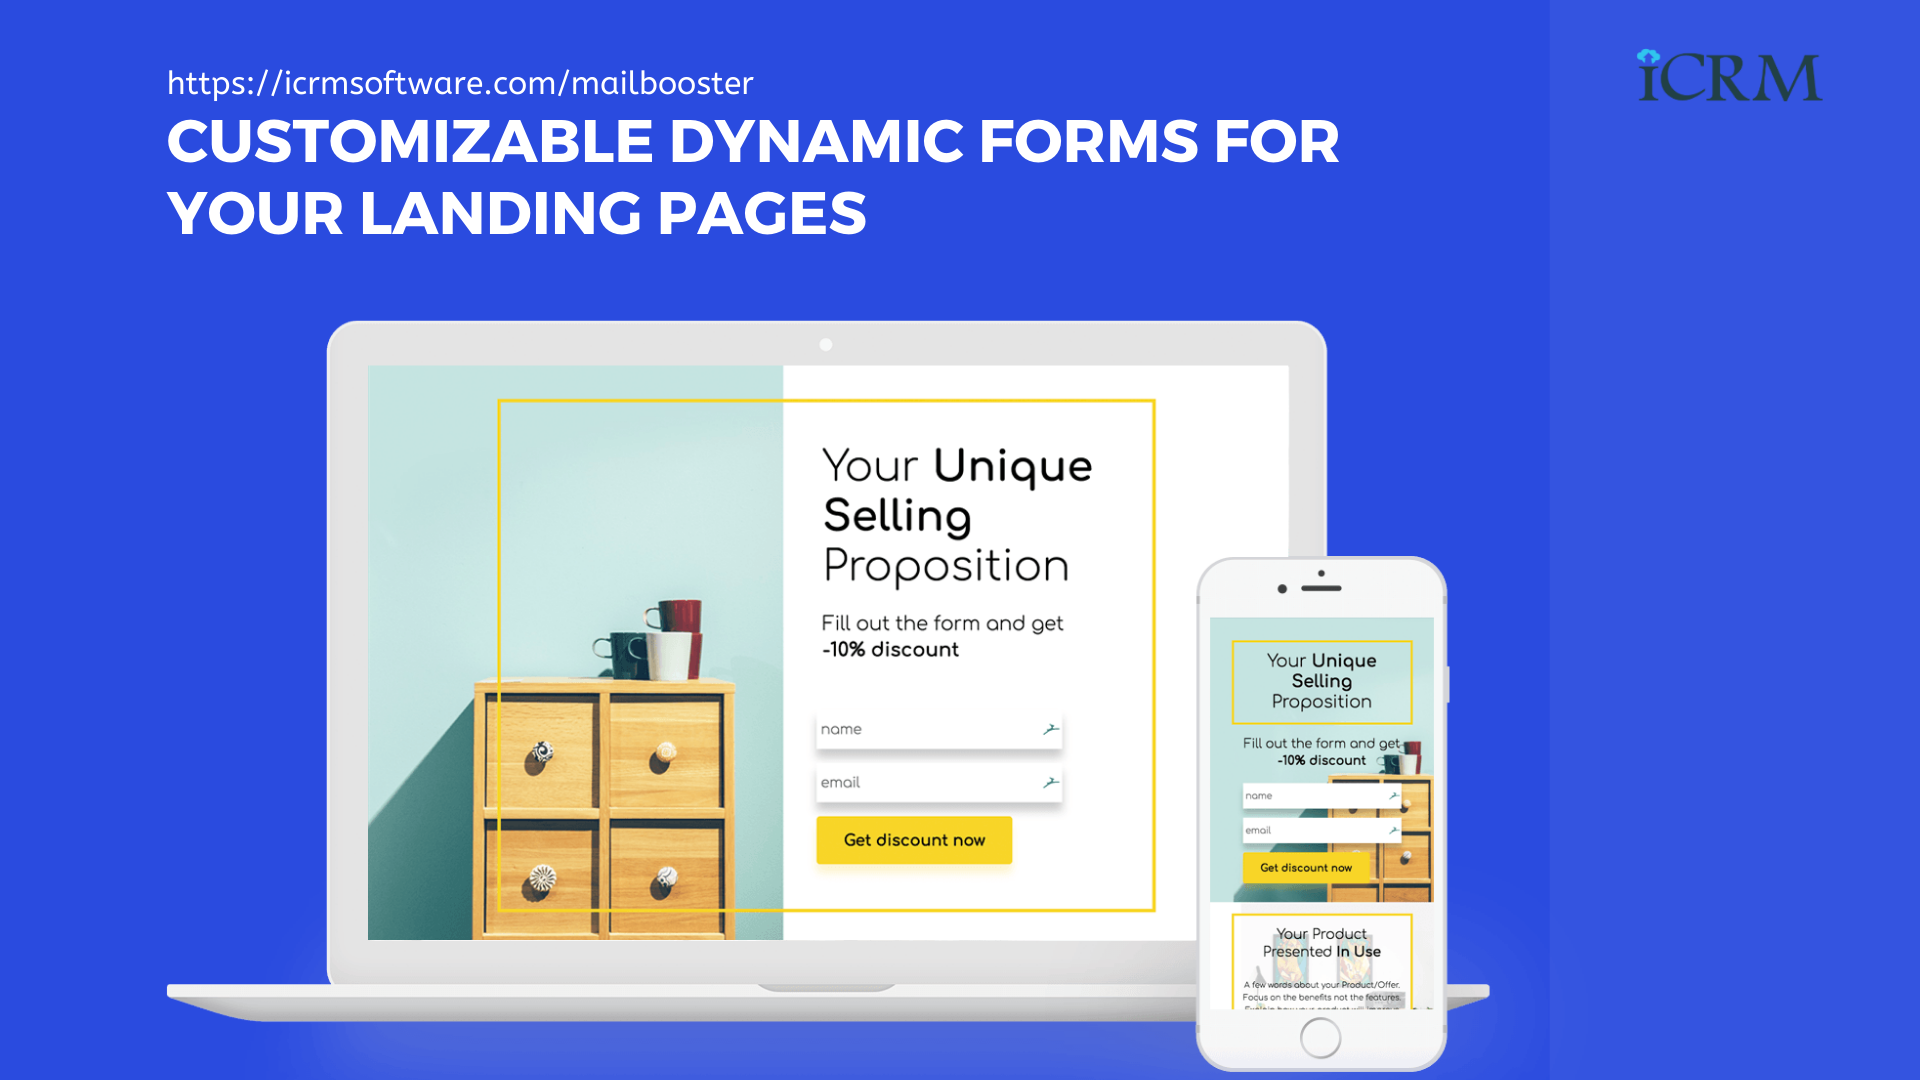 Customizable Dynamic forms for your landing pages. ICRM Mailbooster - AI-Based Email Marketing Application